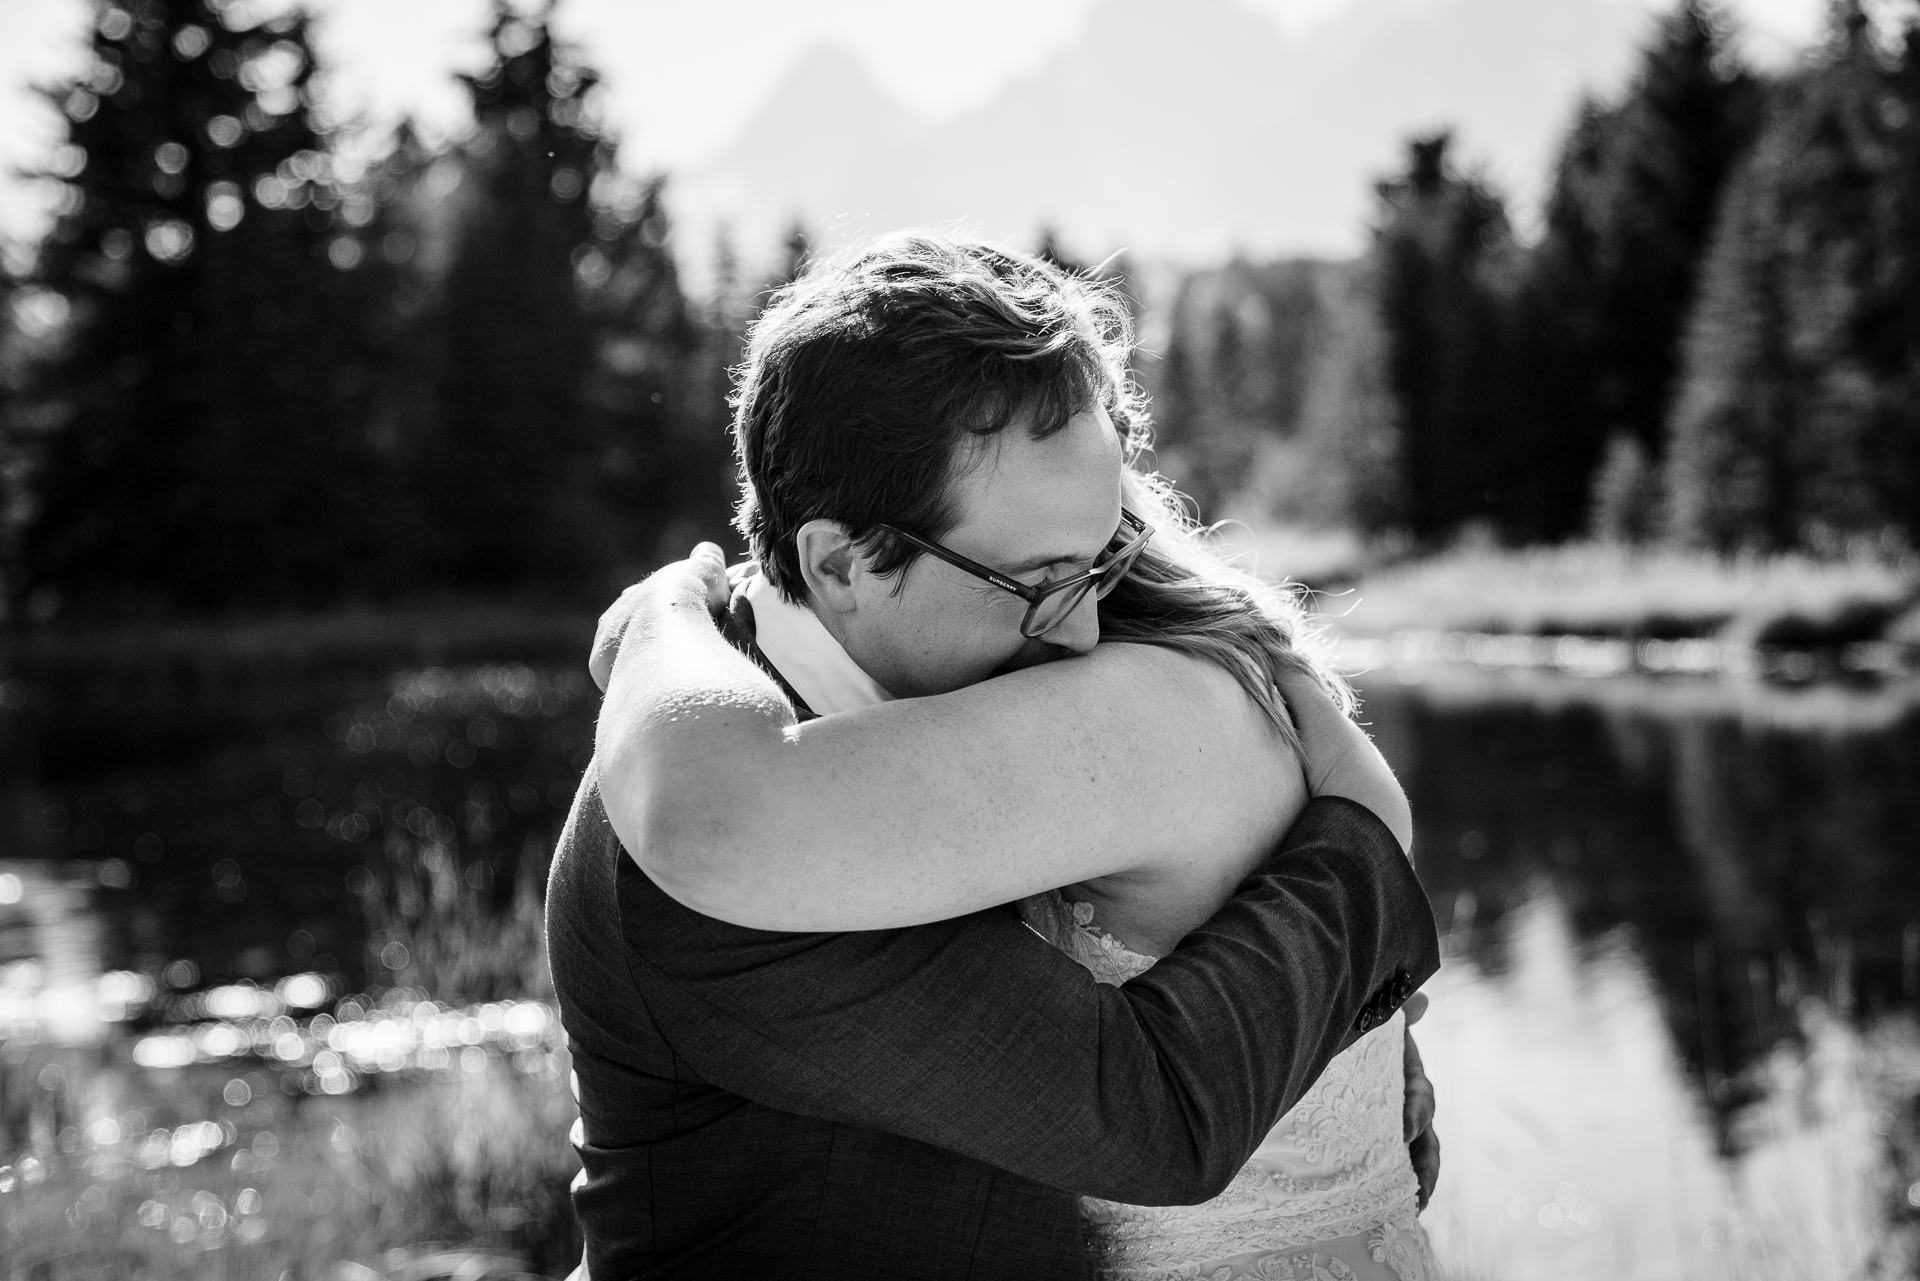 Wyoming Outdoor Elopement Ceremony Photography | The bride and groom embrace moments after their first kiss